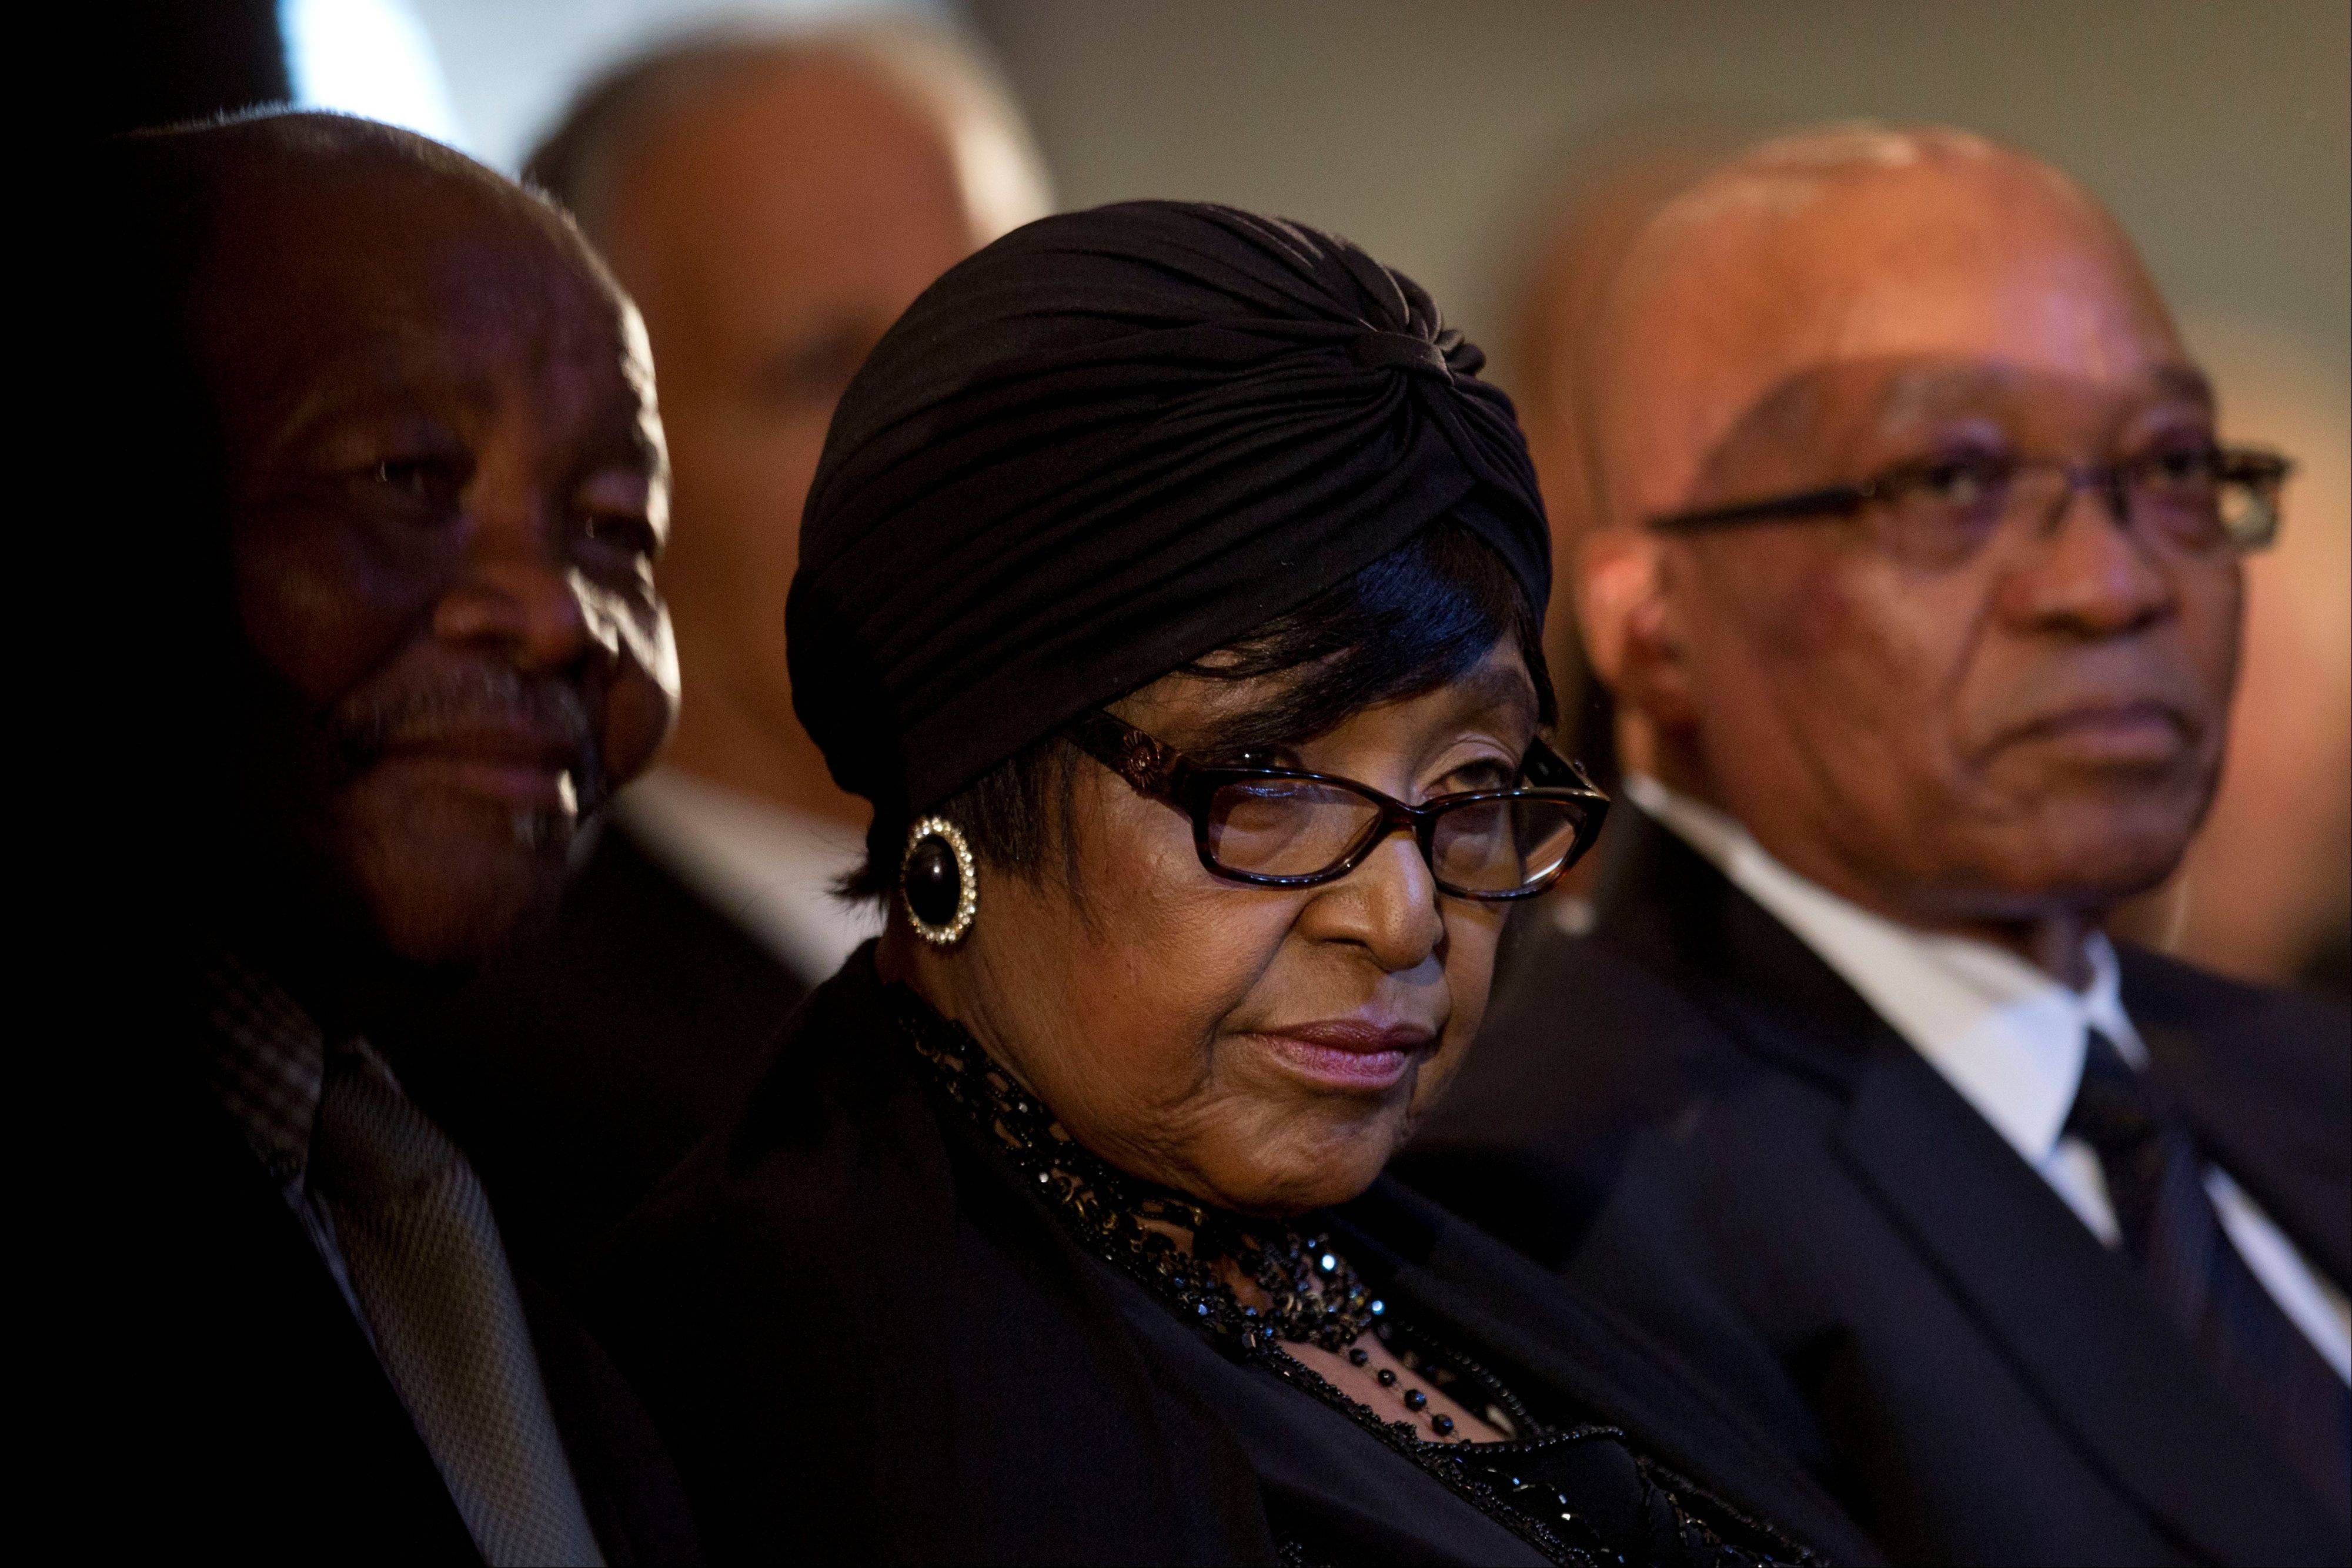 Winnie Madikizela-Mandela, Nelson Mandela's former wife, left, and South African President Jacob Zuma, right, attend a memorial service for Mandela at the Bryanston Methodist Church in Bryanston suburb of Johannesburg, South Africa, Sunday. South Africa is readying itself for the arrival of a flood of world leaders for the memorial service and funeral for Nelson Mandela.